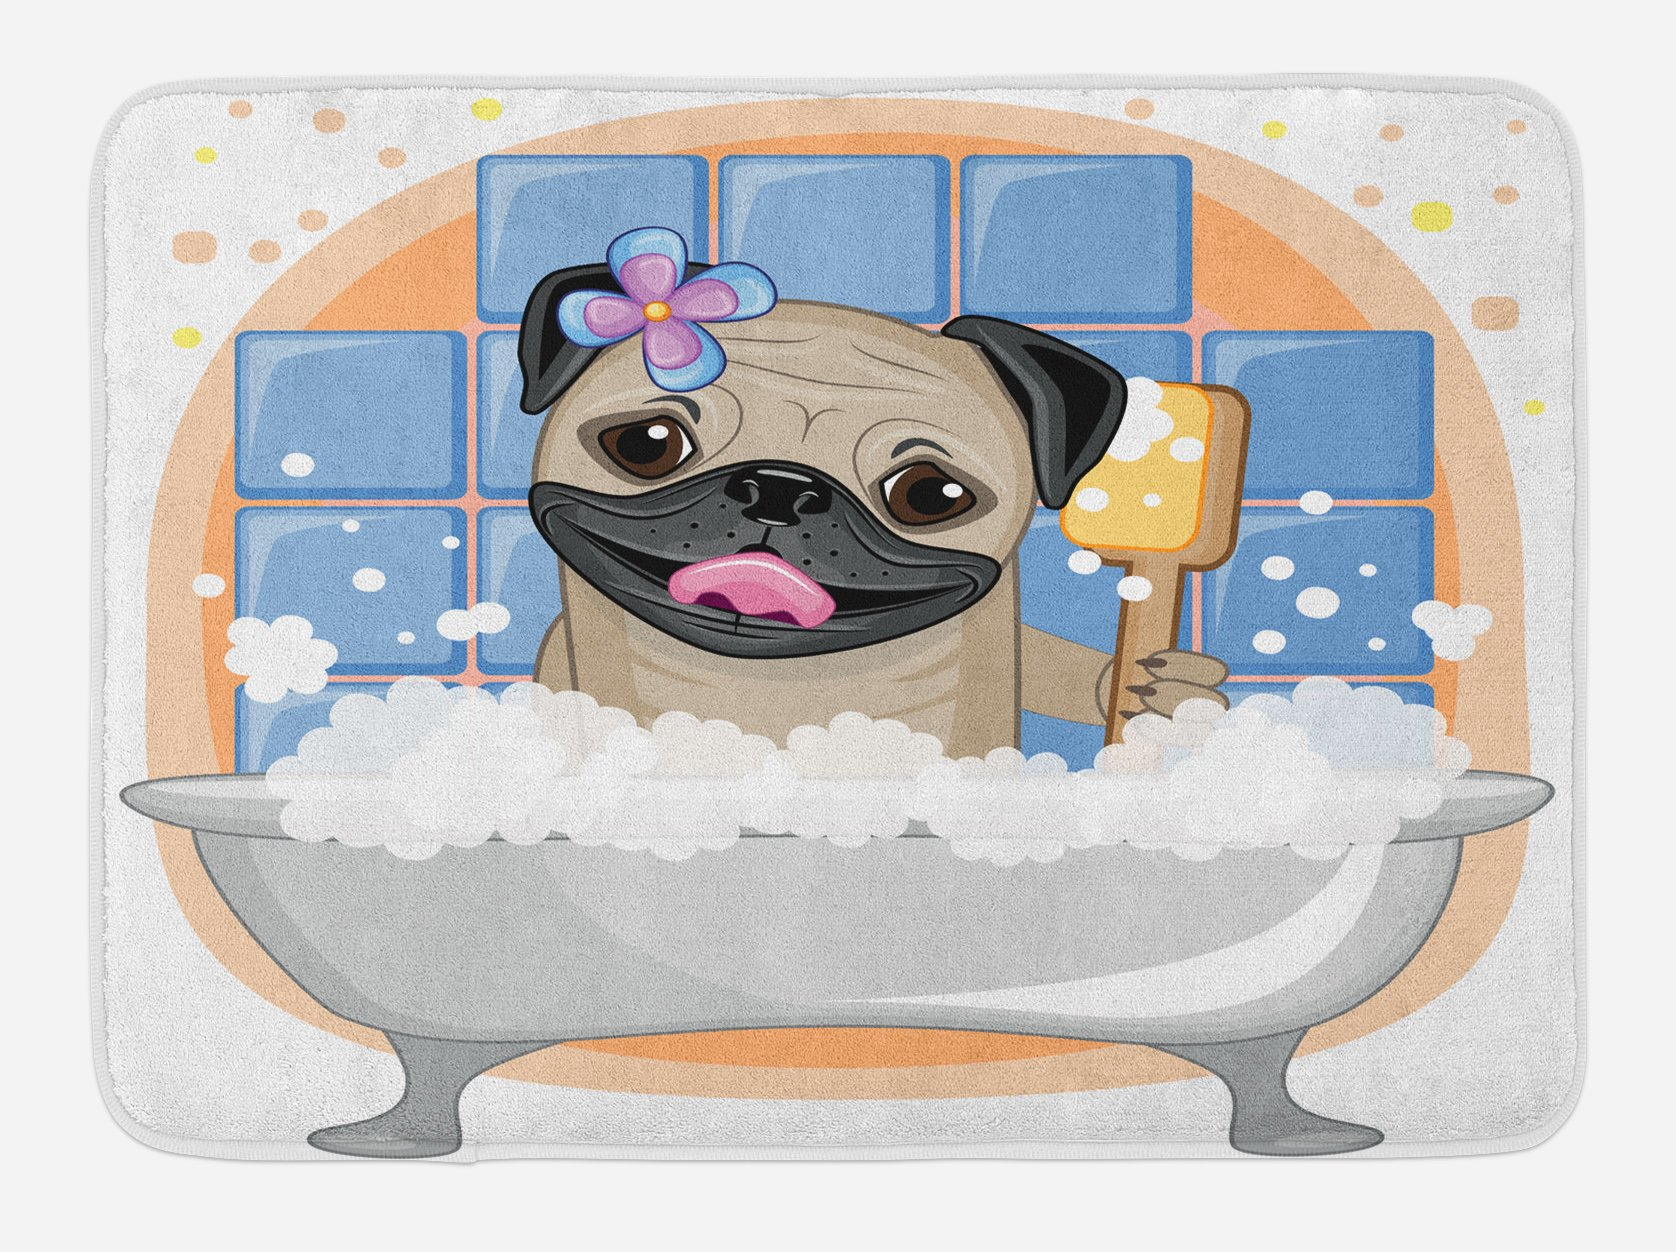 Ambesonne Pug Bath Mat, Caricature of a Dog Having Bath Bubbles Colorful Flower Funny Animal, Plush Bathroom Decor Mat with Non Slip Backing, 29.5 W X 17.5 W Inches, Pale Blue Black Pale Brown